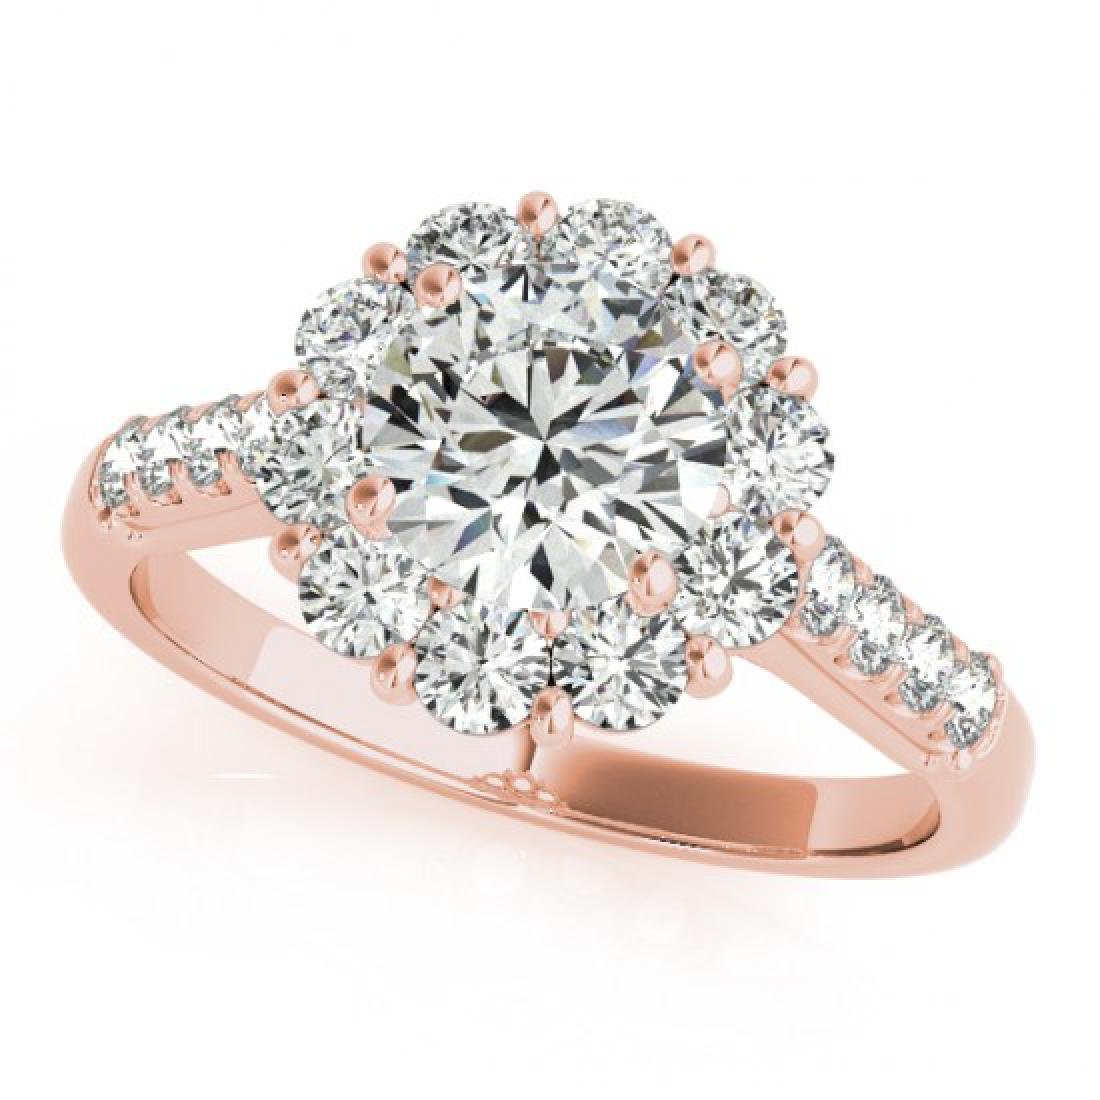 2.75 CTW Certified VS/SI Diamond Solitaire Halo Ring